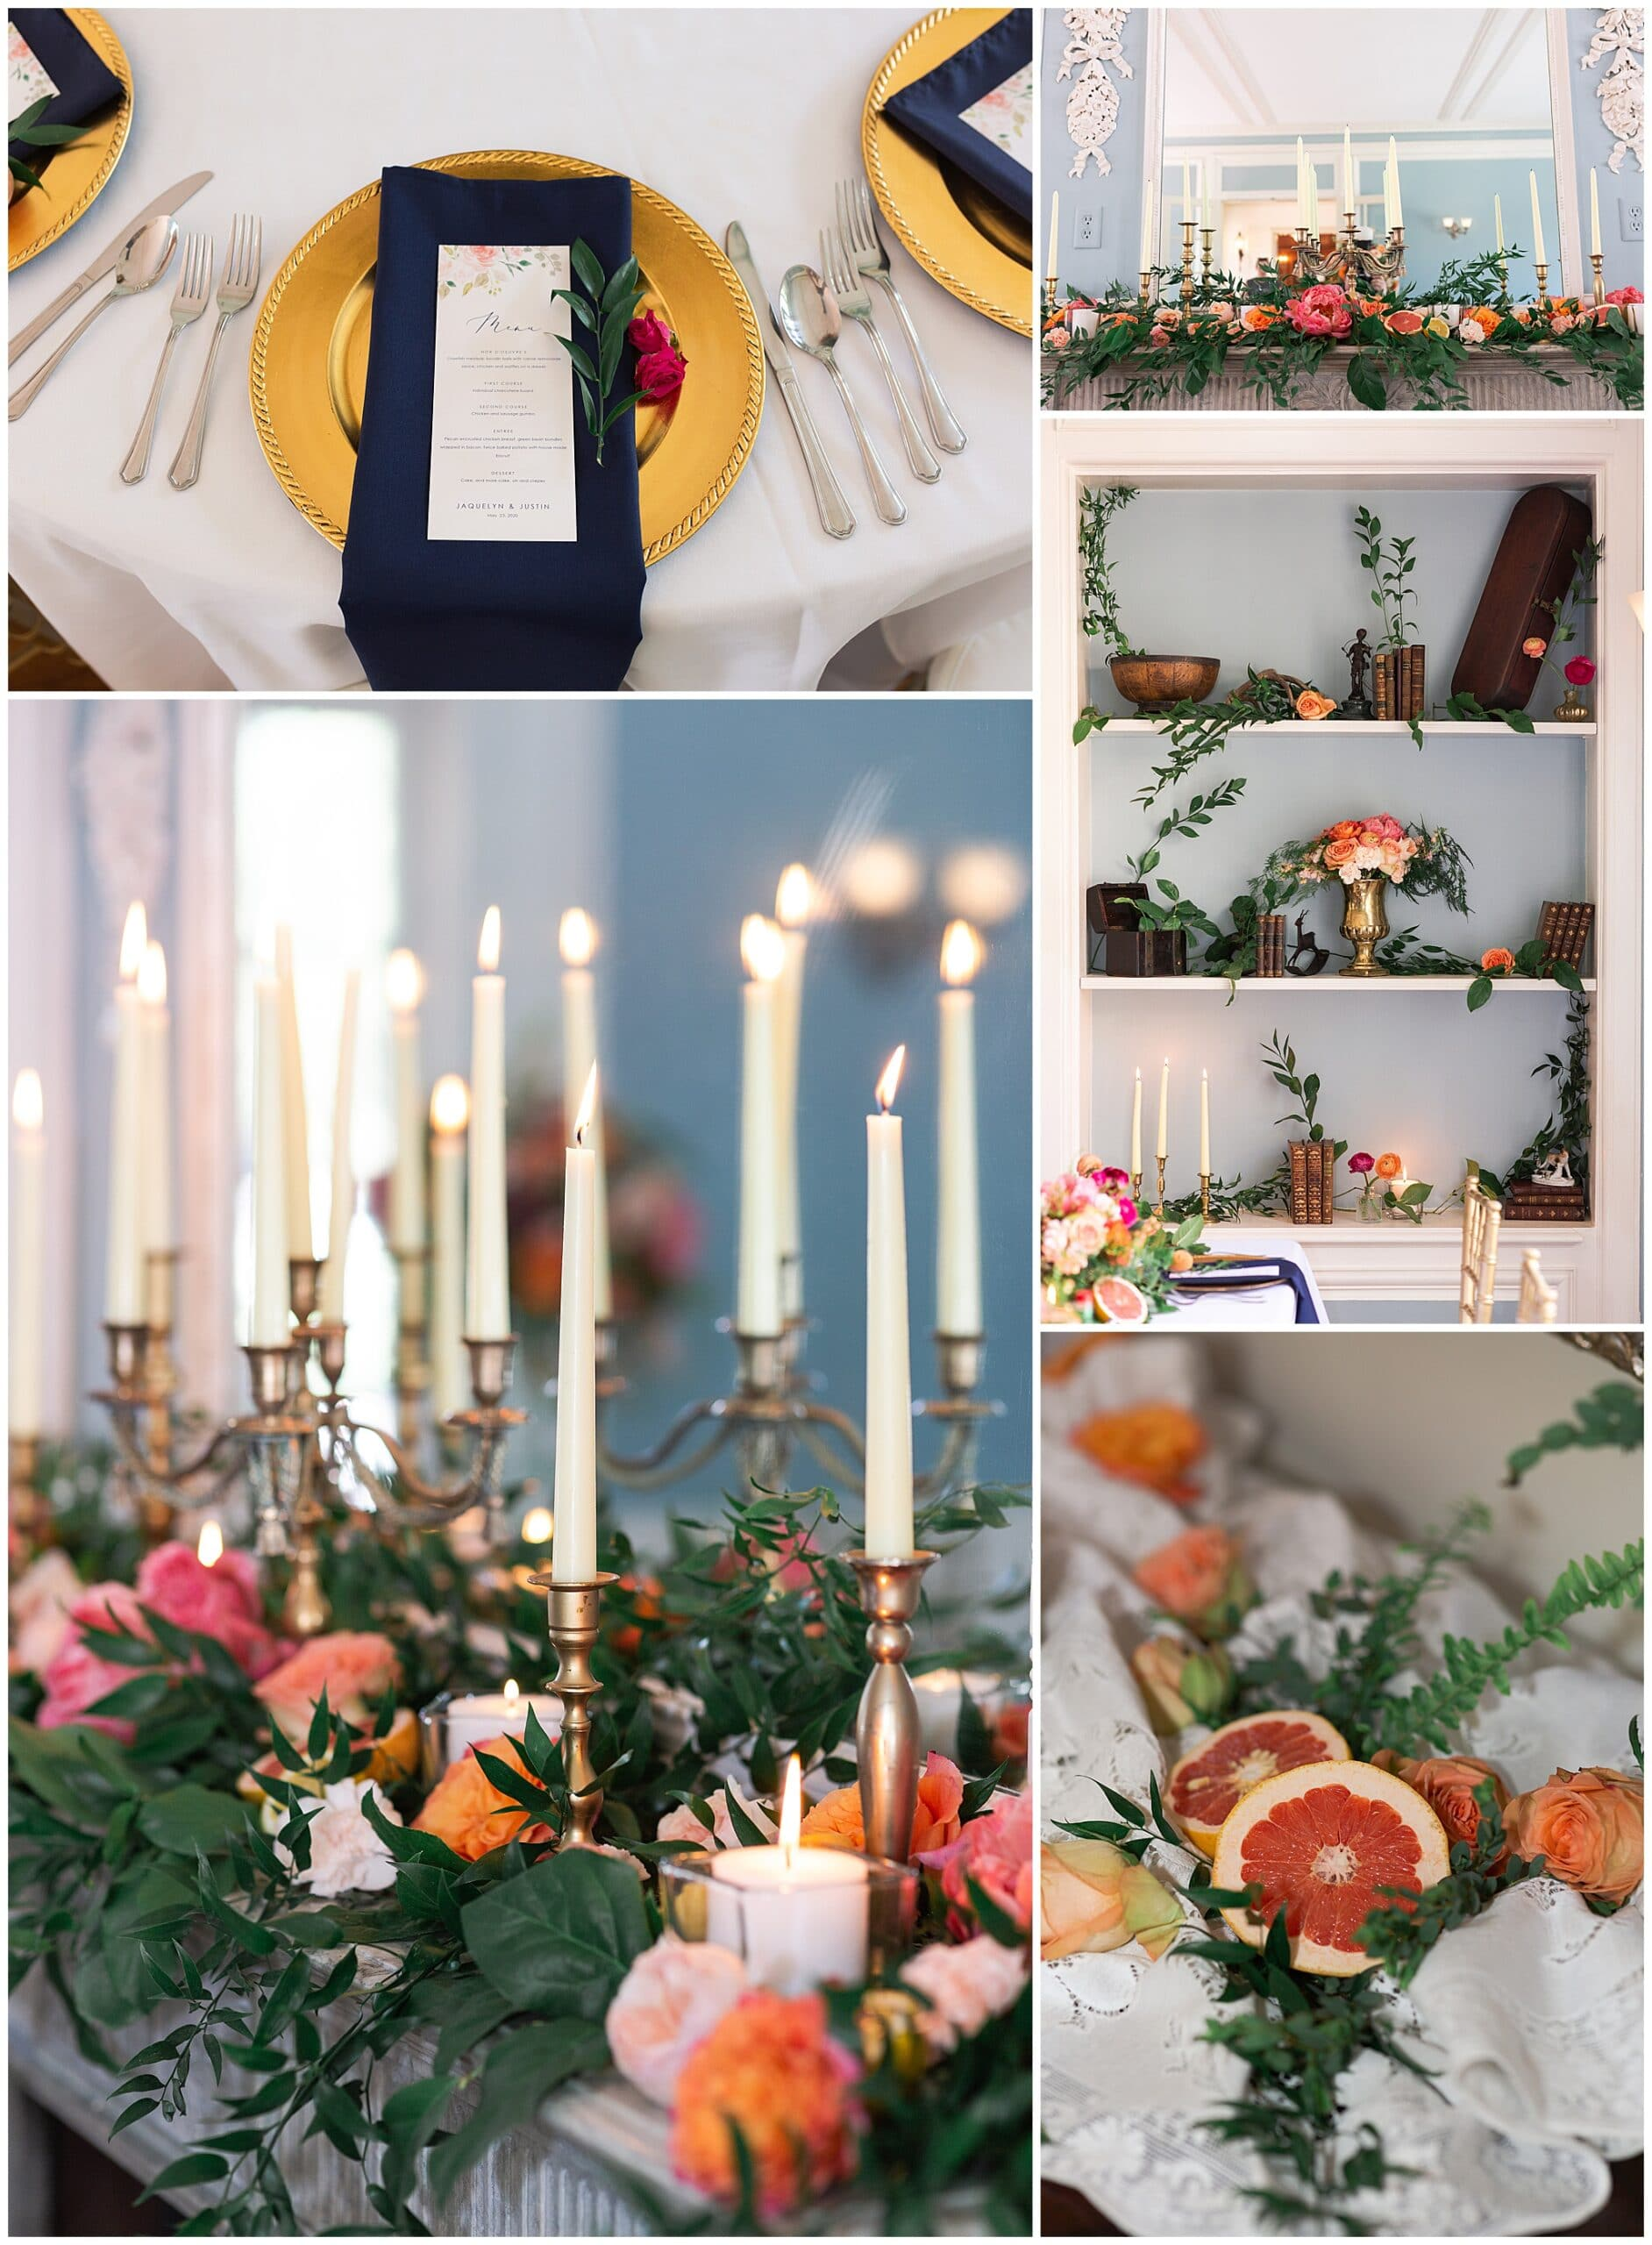 wedding reception details at Astin Mansion in Bryan Texas by Swish and Click Photography